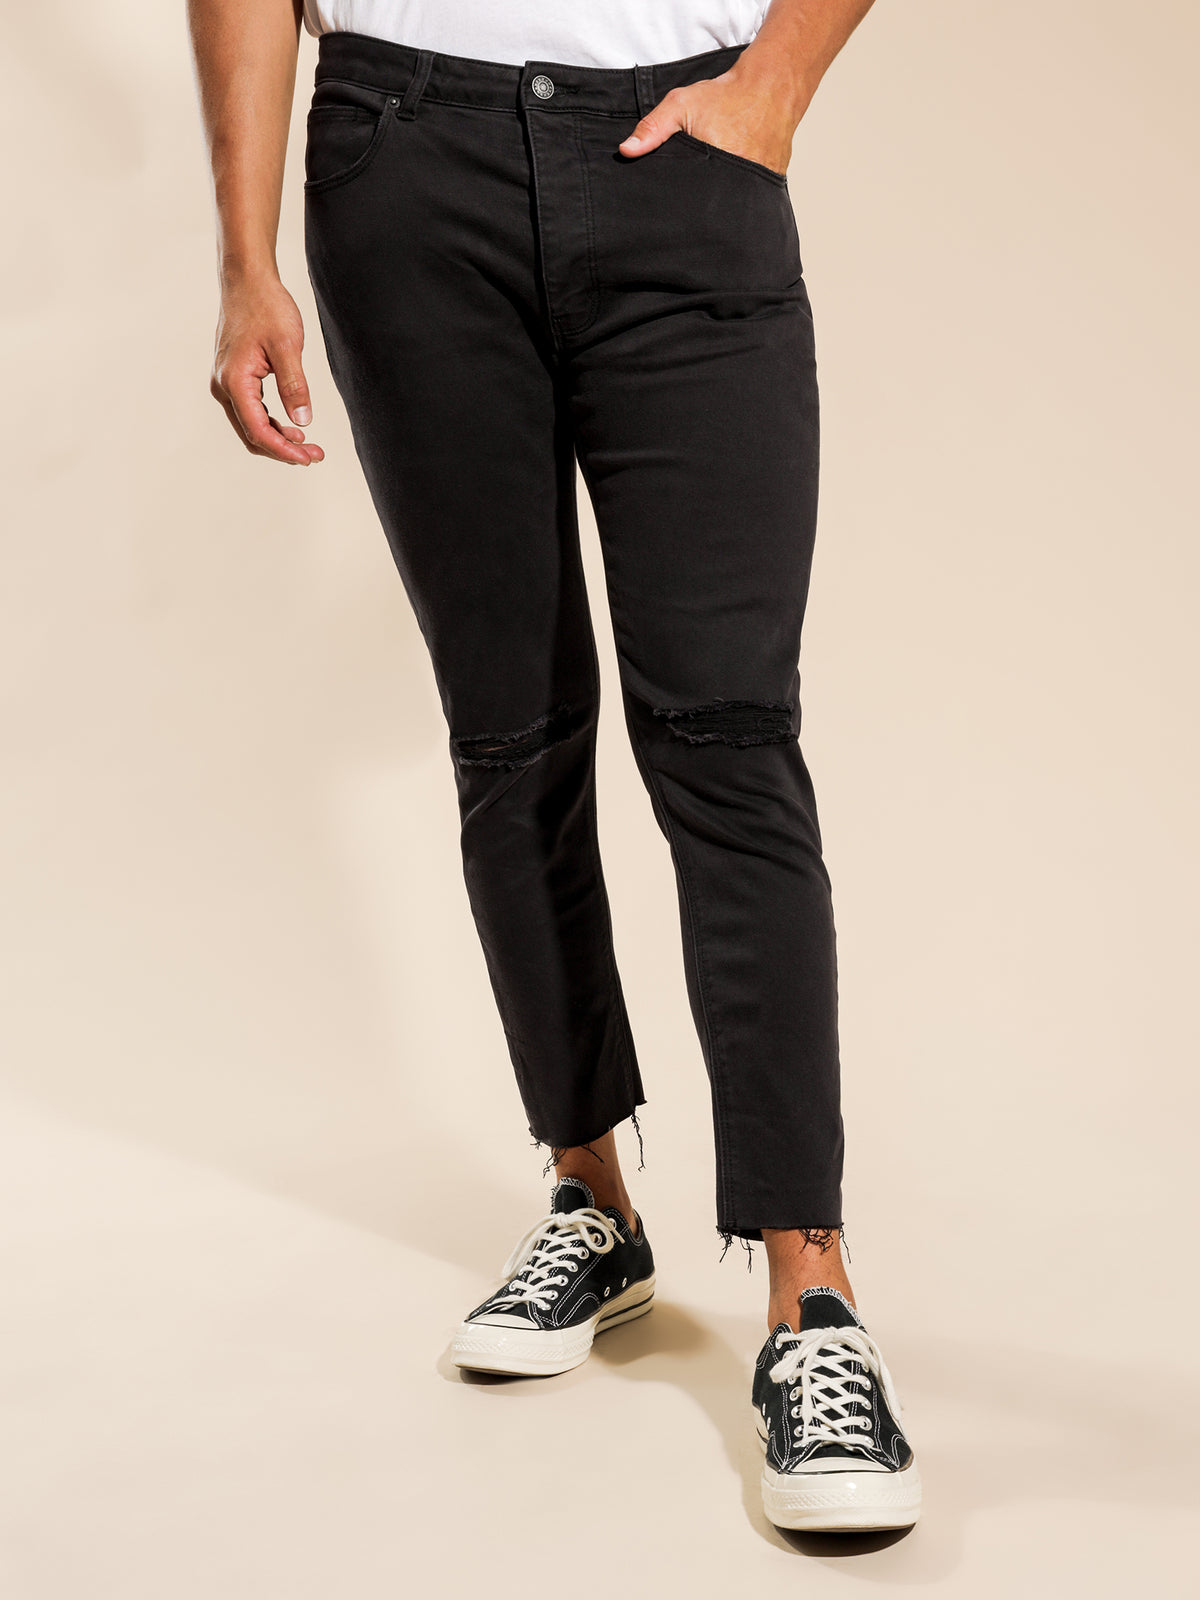 A Turn Up Slash-Knee Jeans in Smokey Black Denim